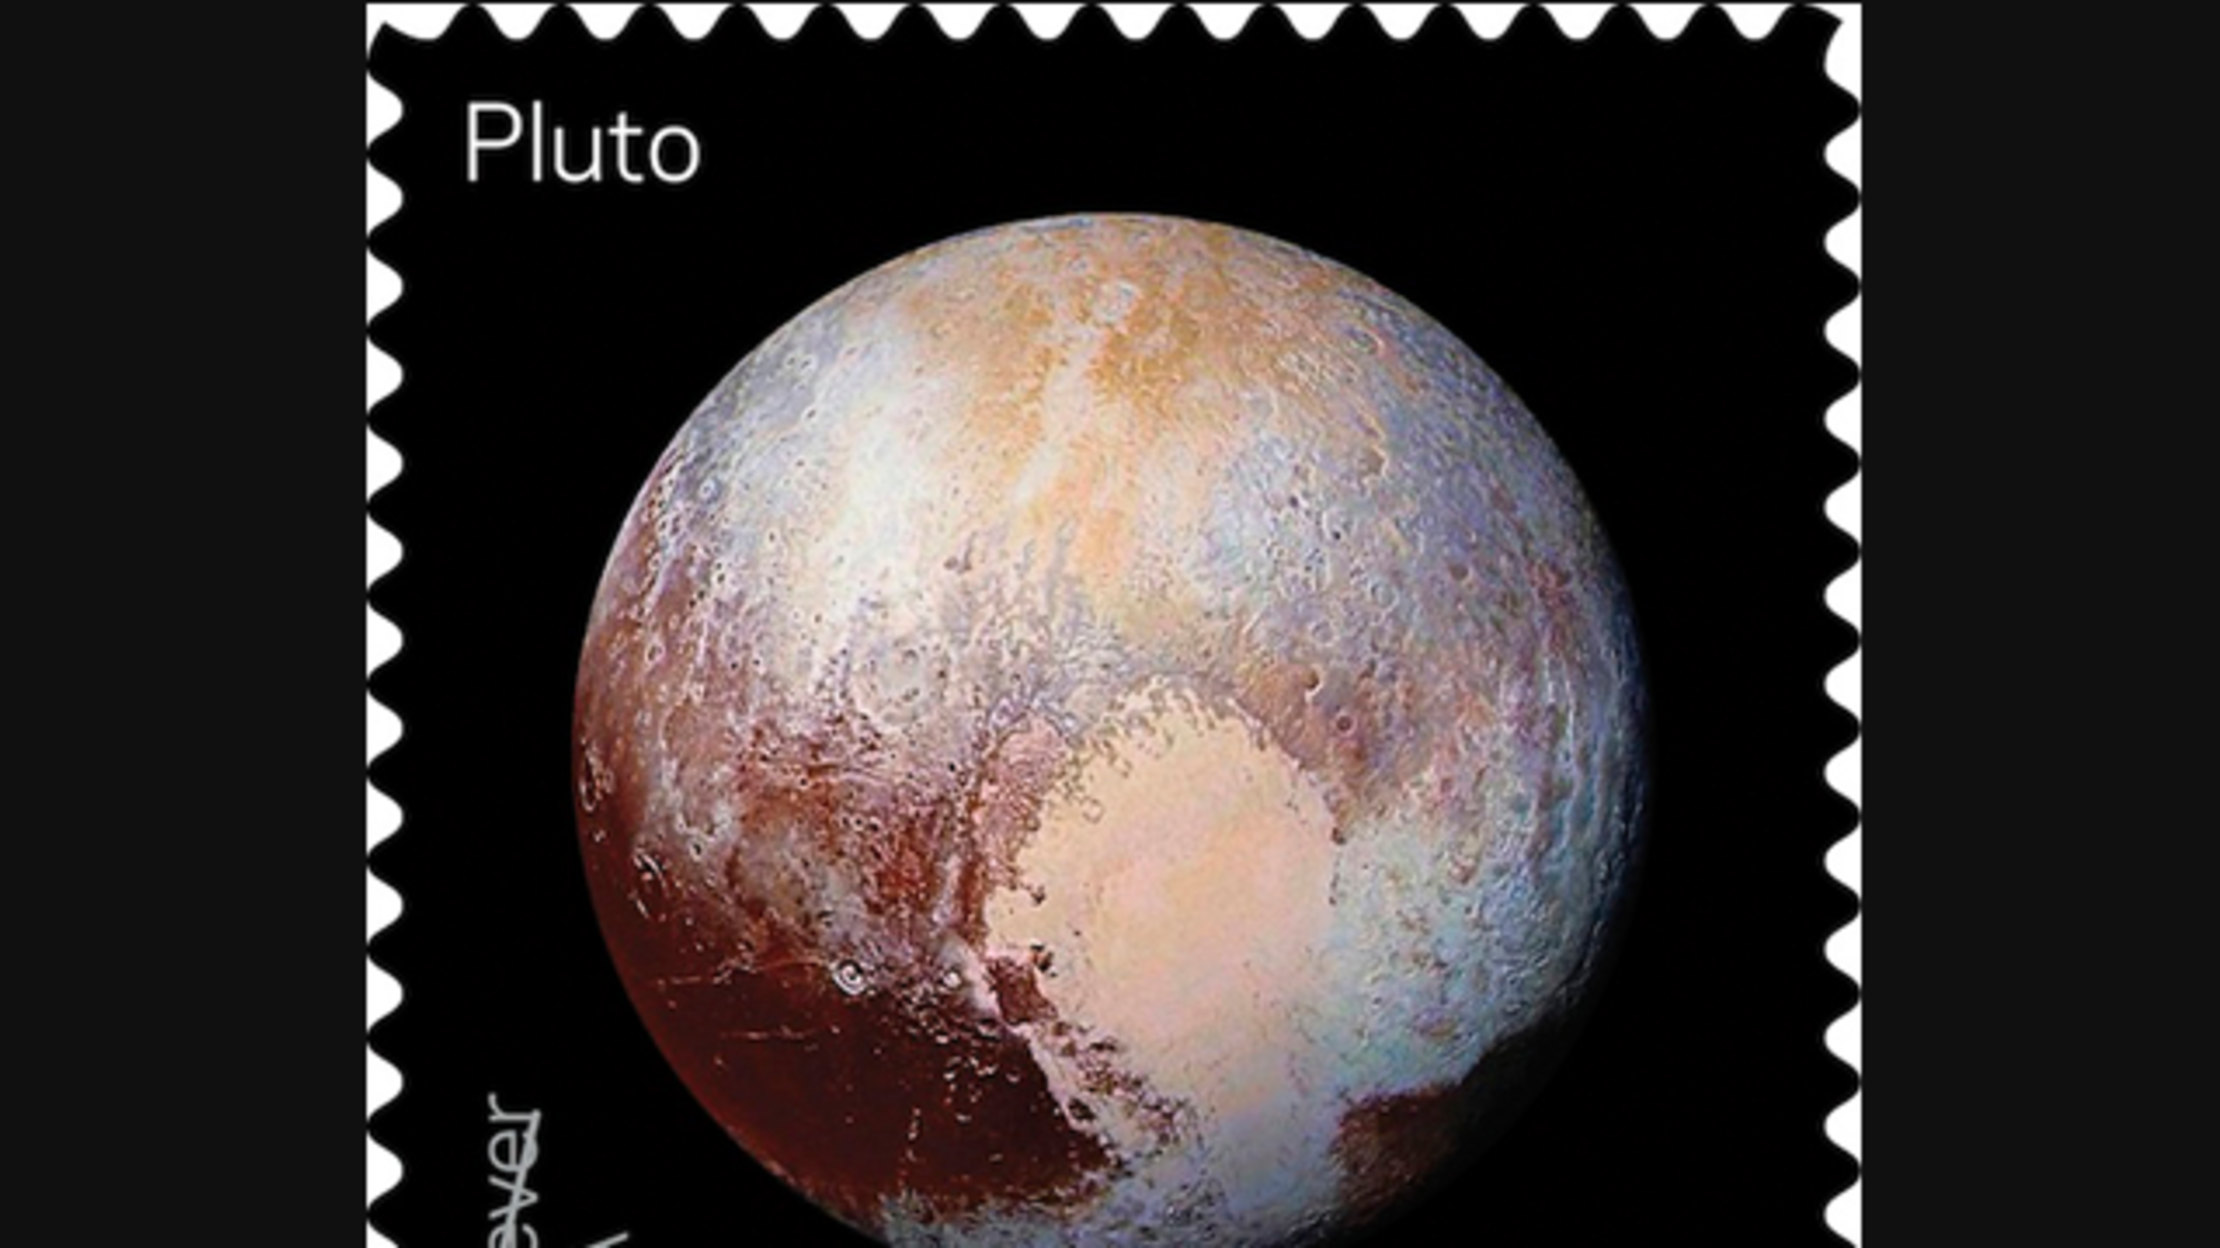 Postal Service Celebrates New Horizons Mission With Brand New Pluto Stamps Mental Floss